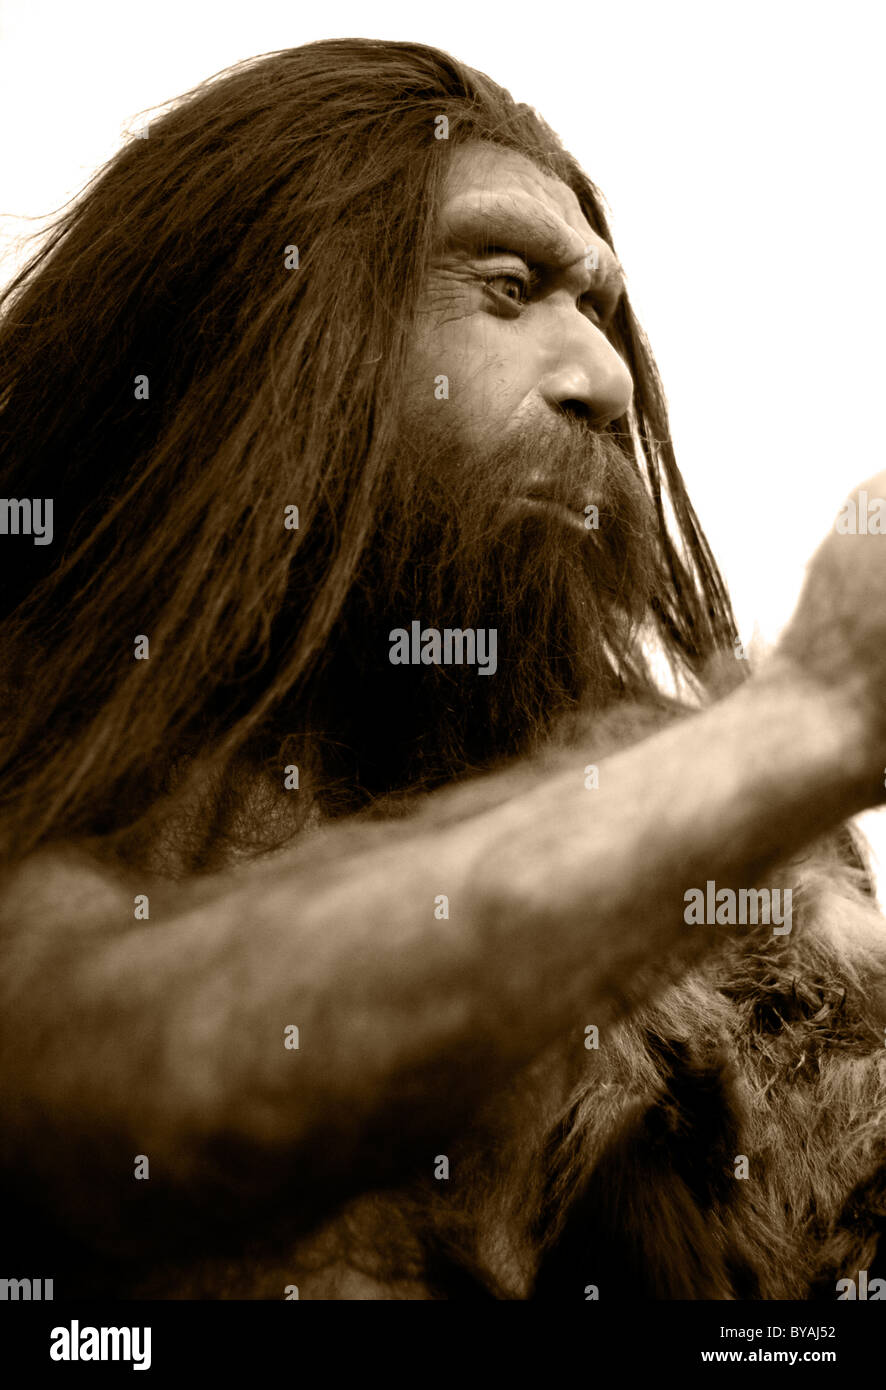 Caveman in a moseum. - Stock Image